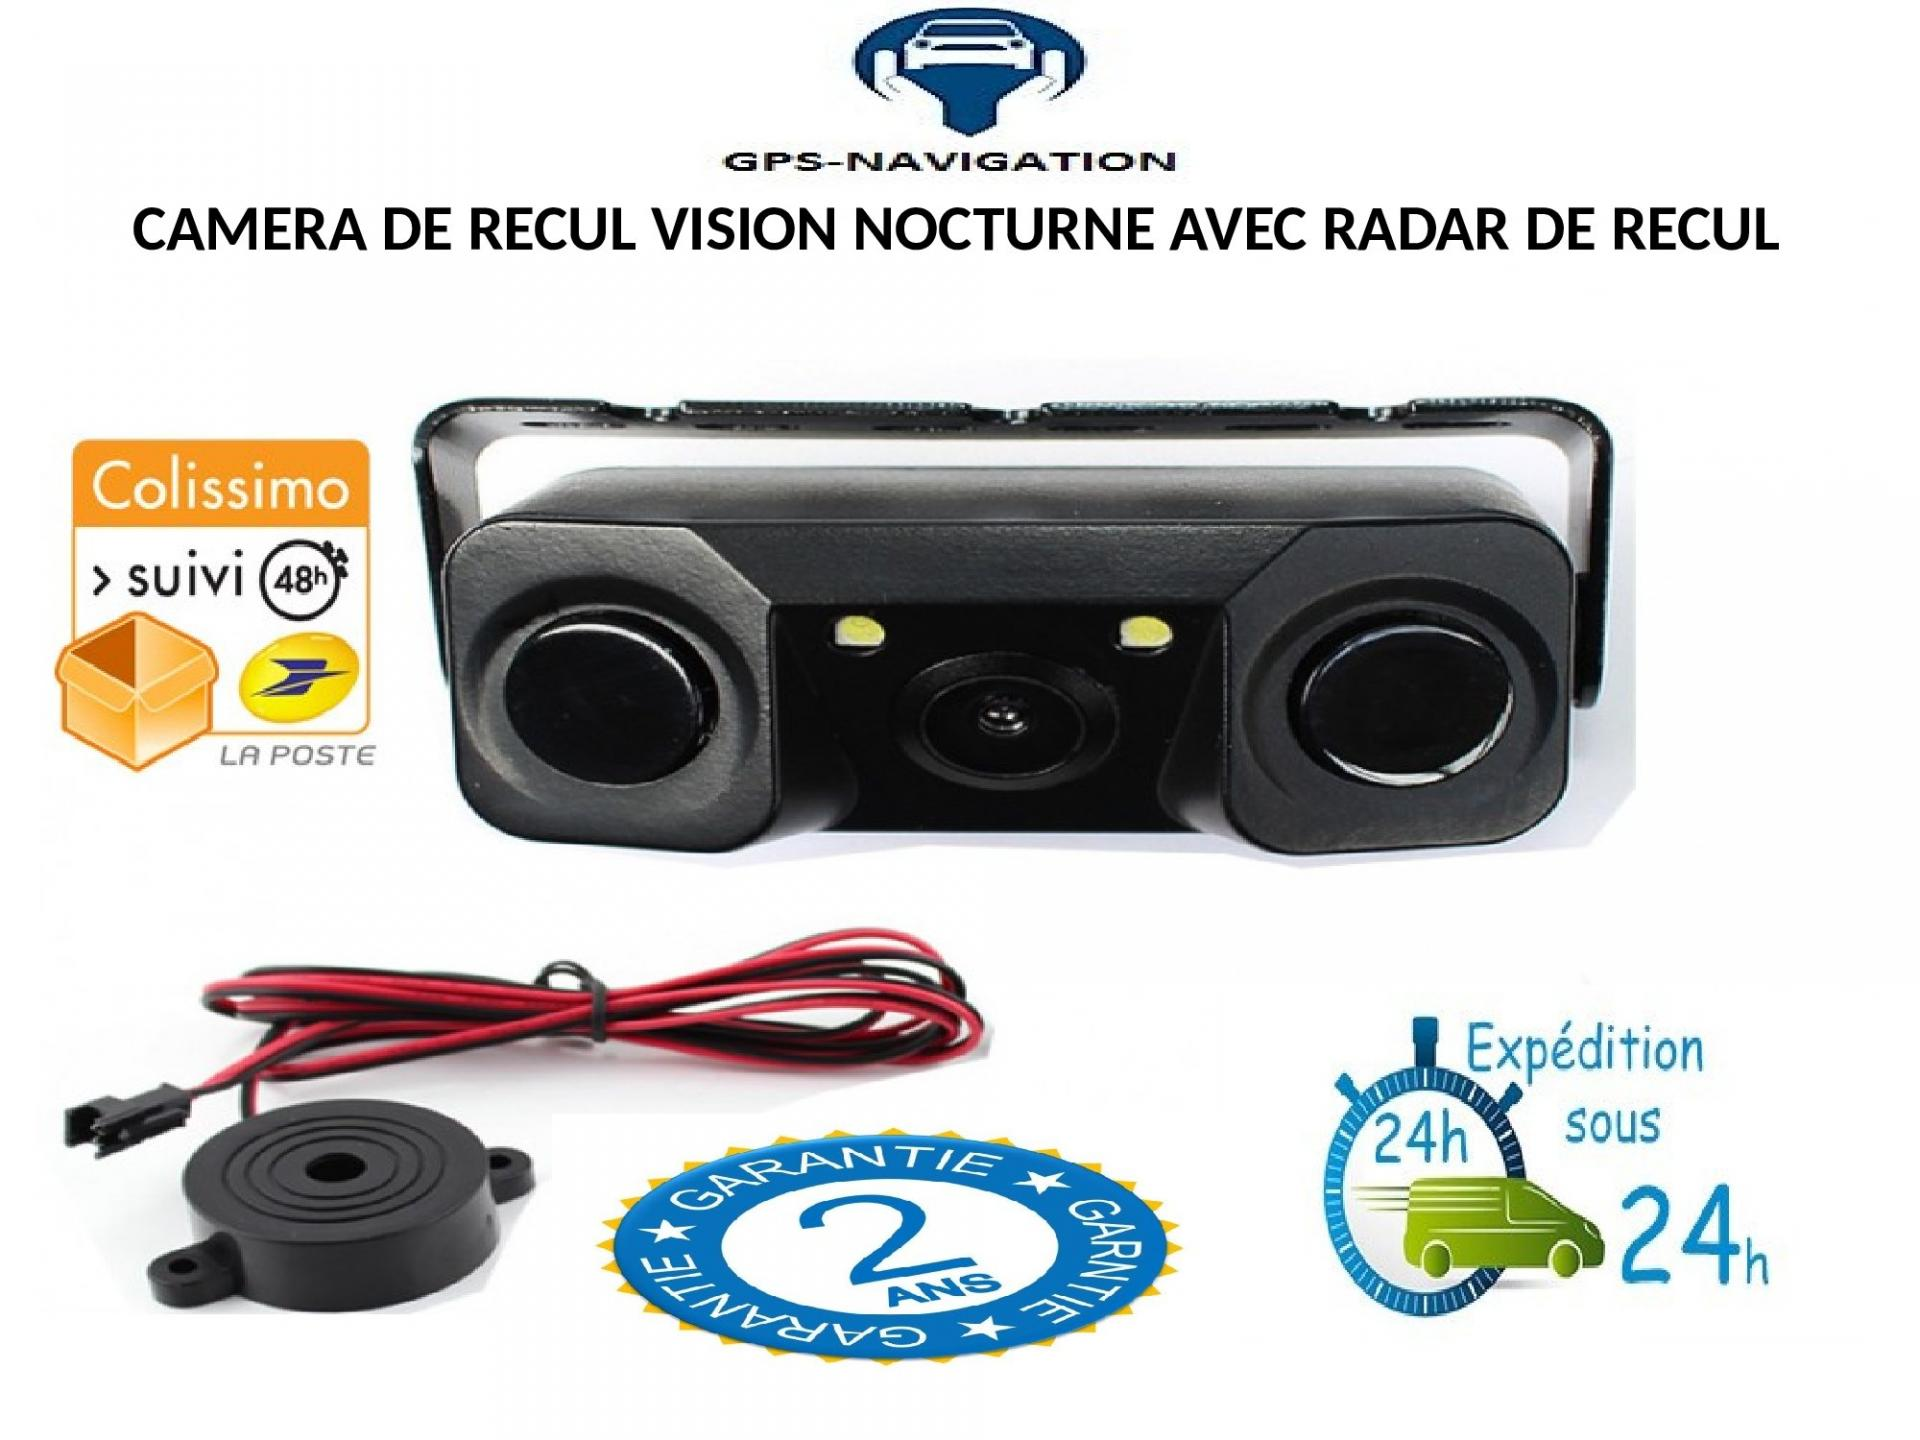 Camera de recul et radar de recul integre gps navigation fr 3 1